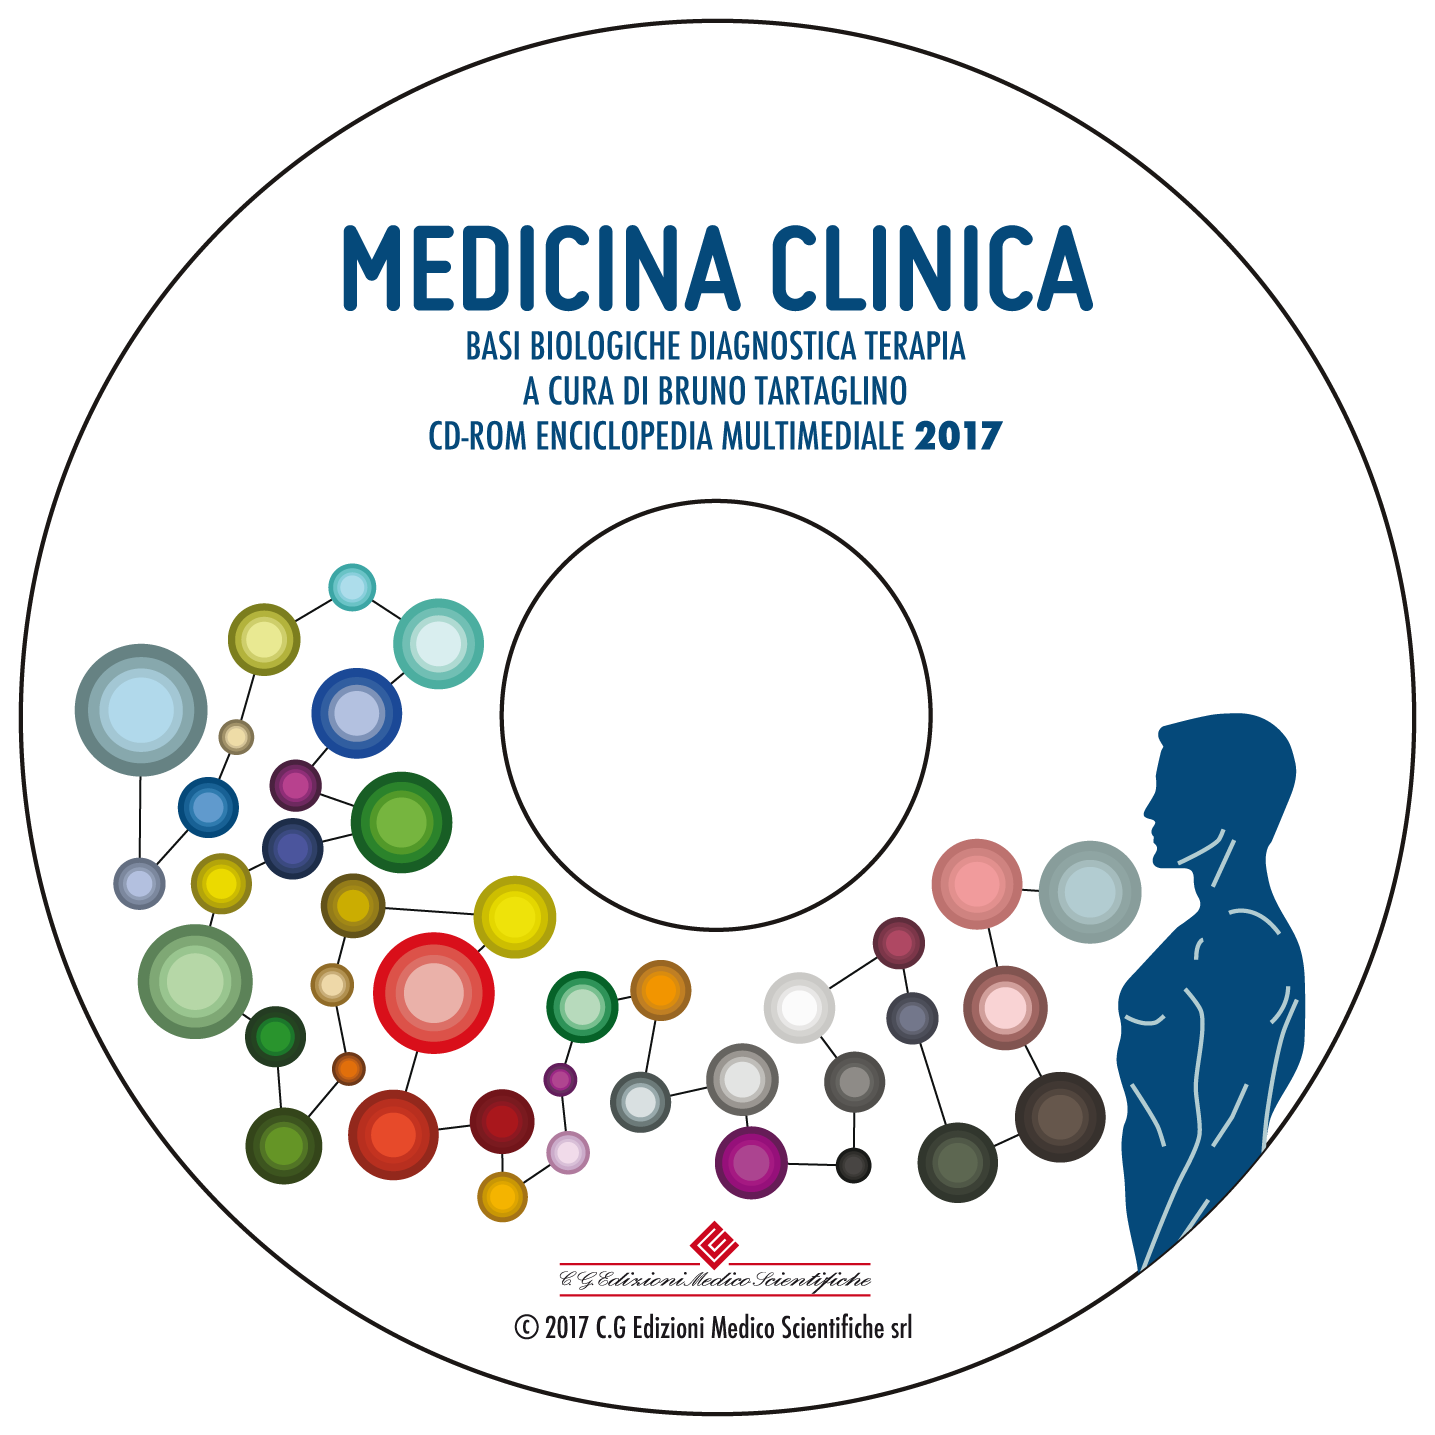 Medicina Clinica 2017 - Basi biologiche Diagnostica Terapia CD Rom